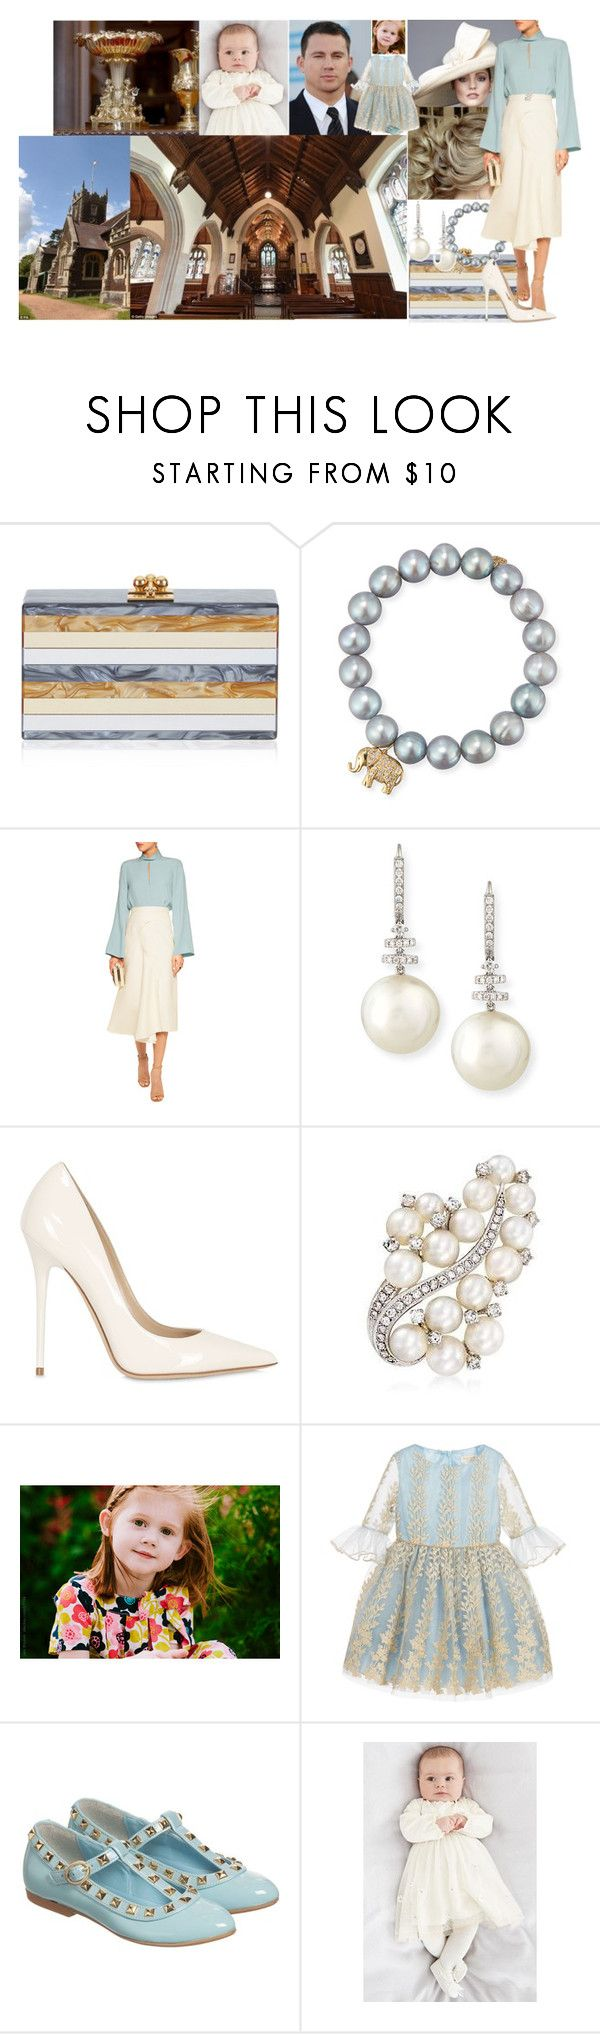 """Jana, Paul and Natalie Winter at the christening of Princess Frances of Clarence"" by charlottedebora ❤ liked on Polyvore featuring Edie Parker, Sydney Evan, Roksanda, Belpearl, Jimmy Choo, David Charles and step2wo"